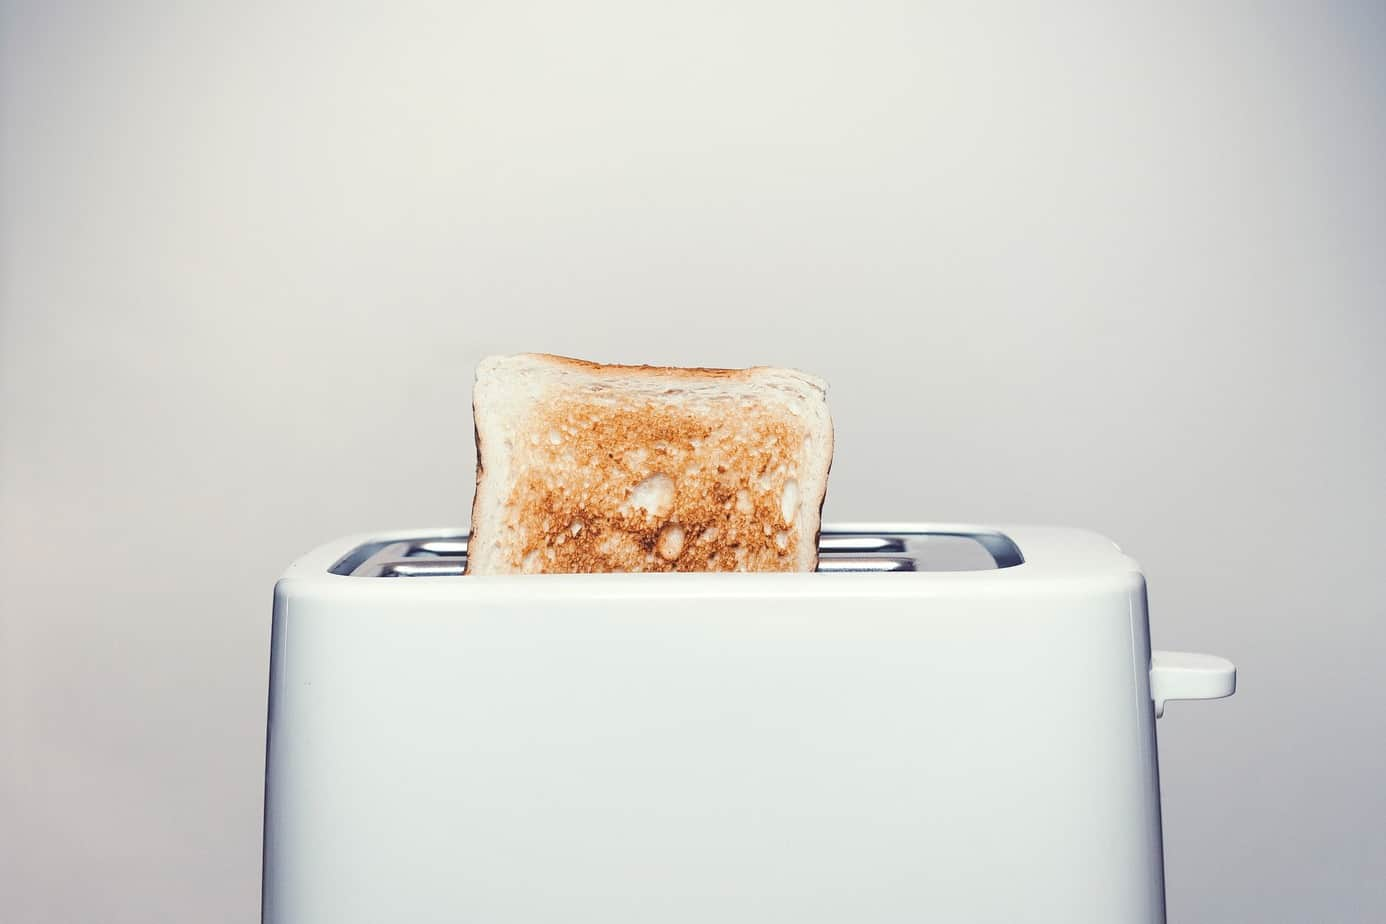 Do Toasters Toast on Both Sides?